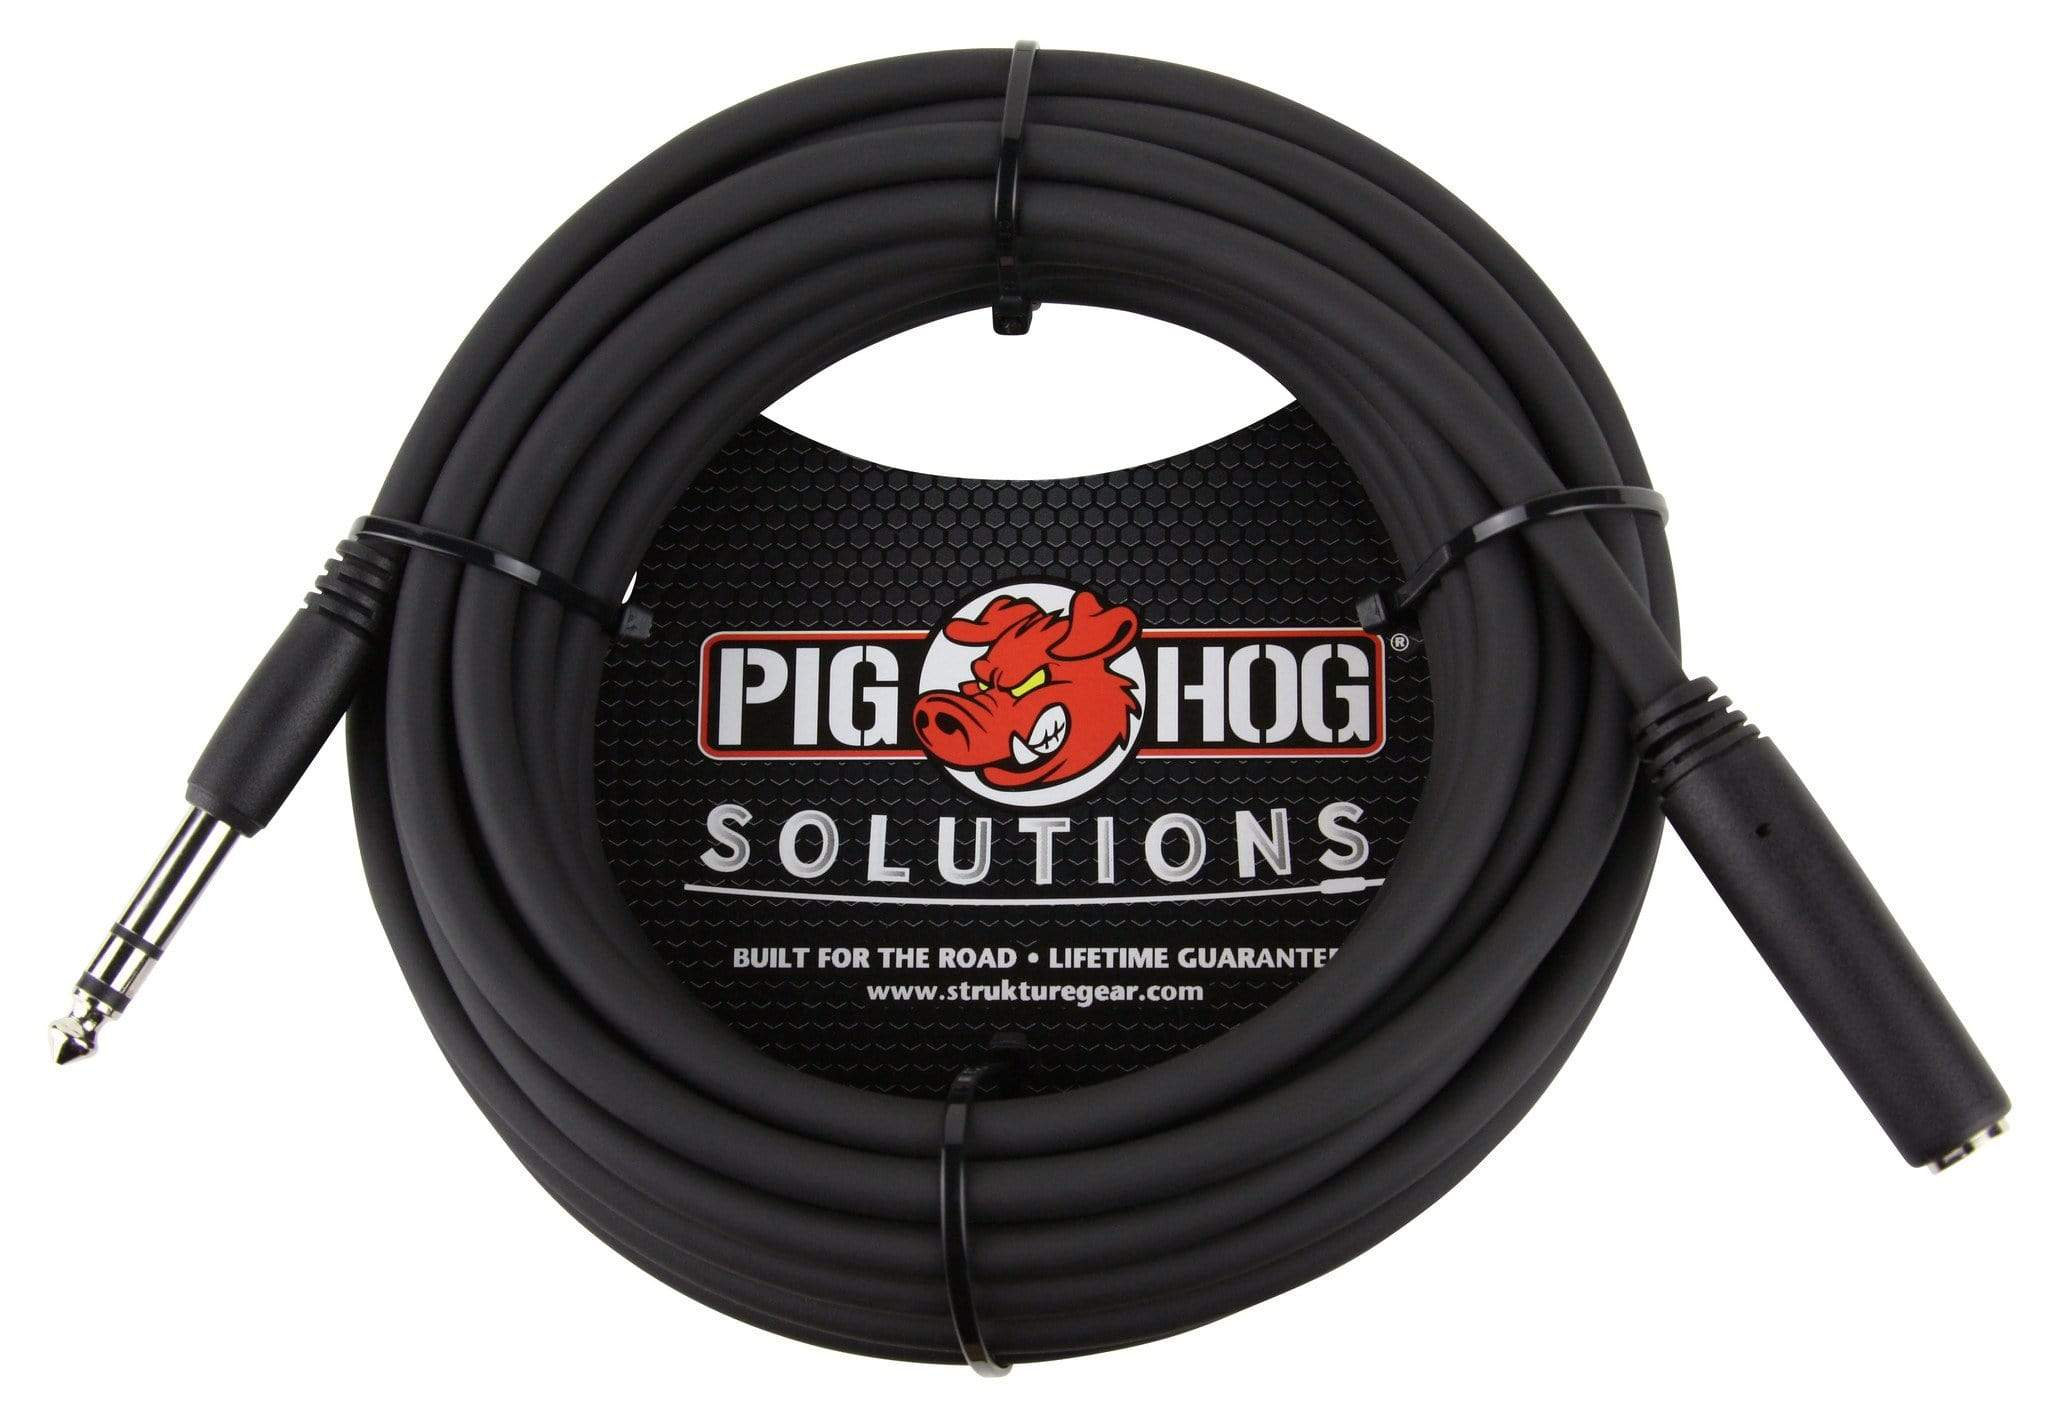 "PIG HOG HEADPHONE EXTENSION CABLES Pig Hog 25 ft Headphone Extension Cable 1/4"" Stereo TRS Male to Female Cord NEW"